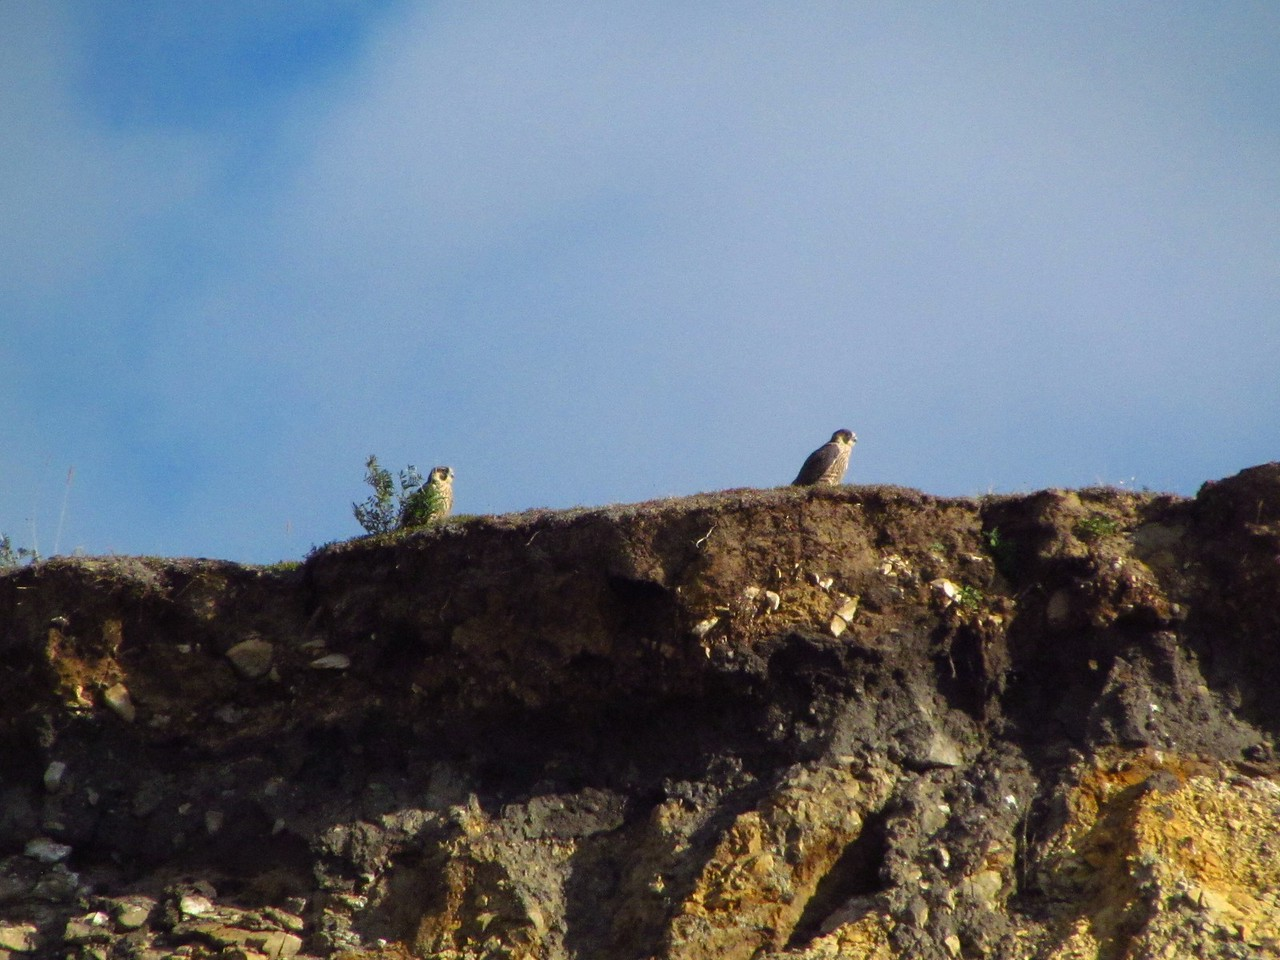 Two peregrine falcons on the ridge across the river one morning.  Saw quite a few of them.